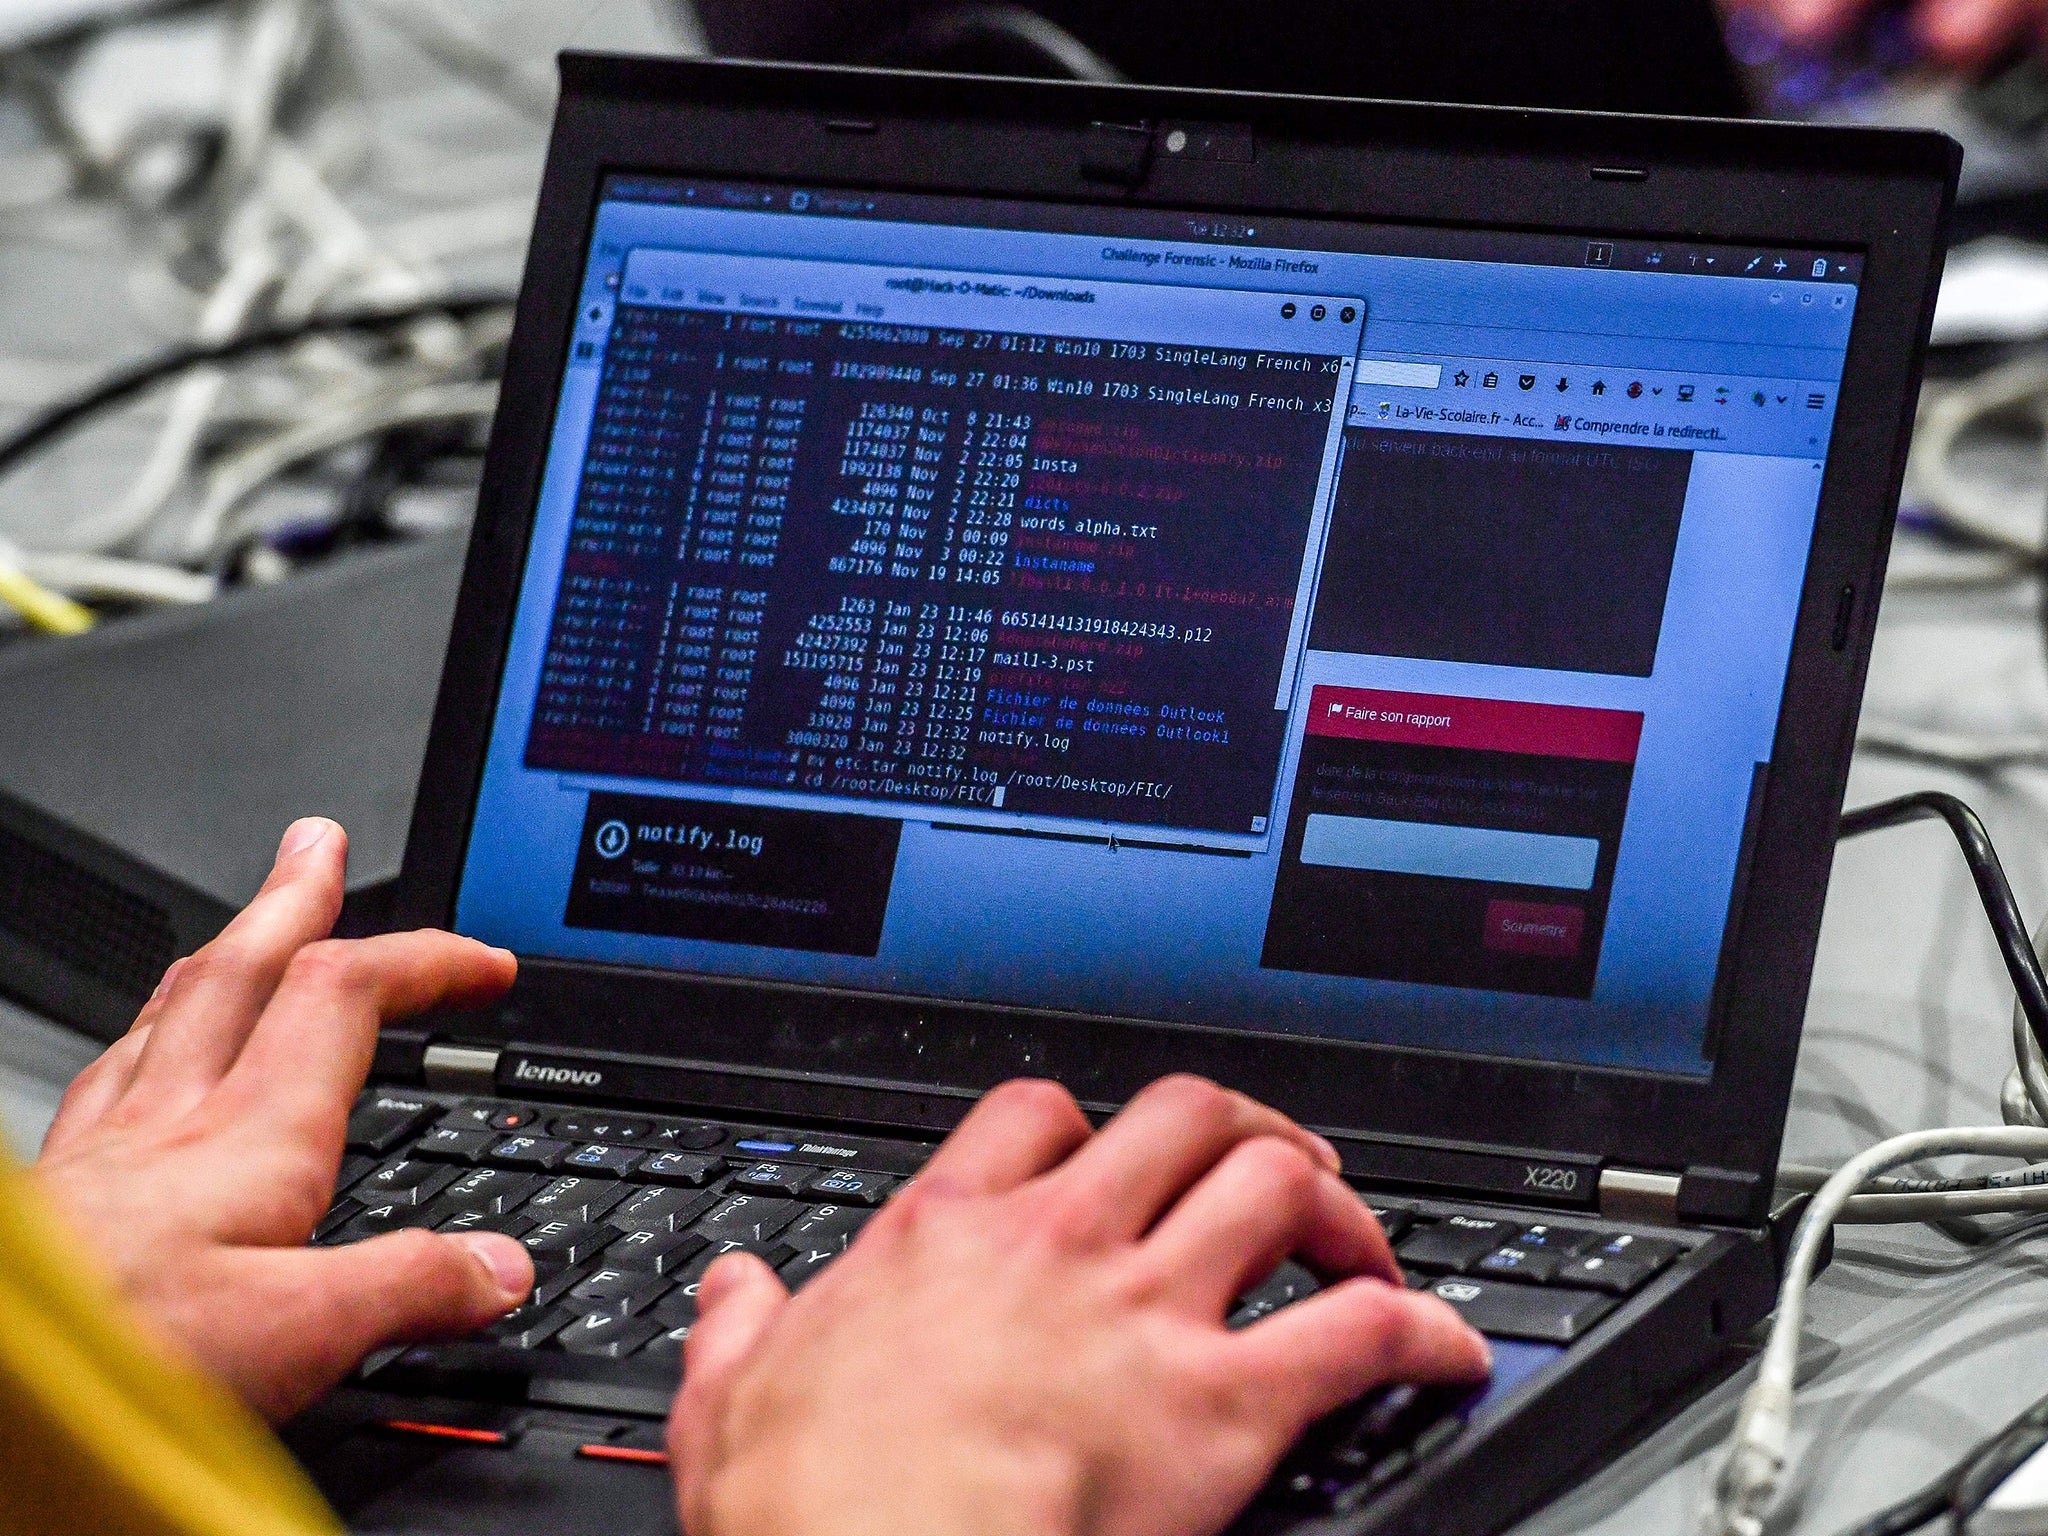 UK to be hit by 'category 1' cyber emergency, intelligence chief warns